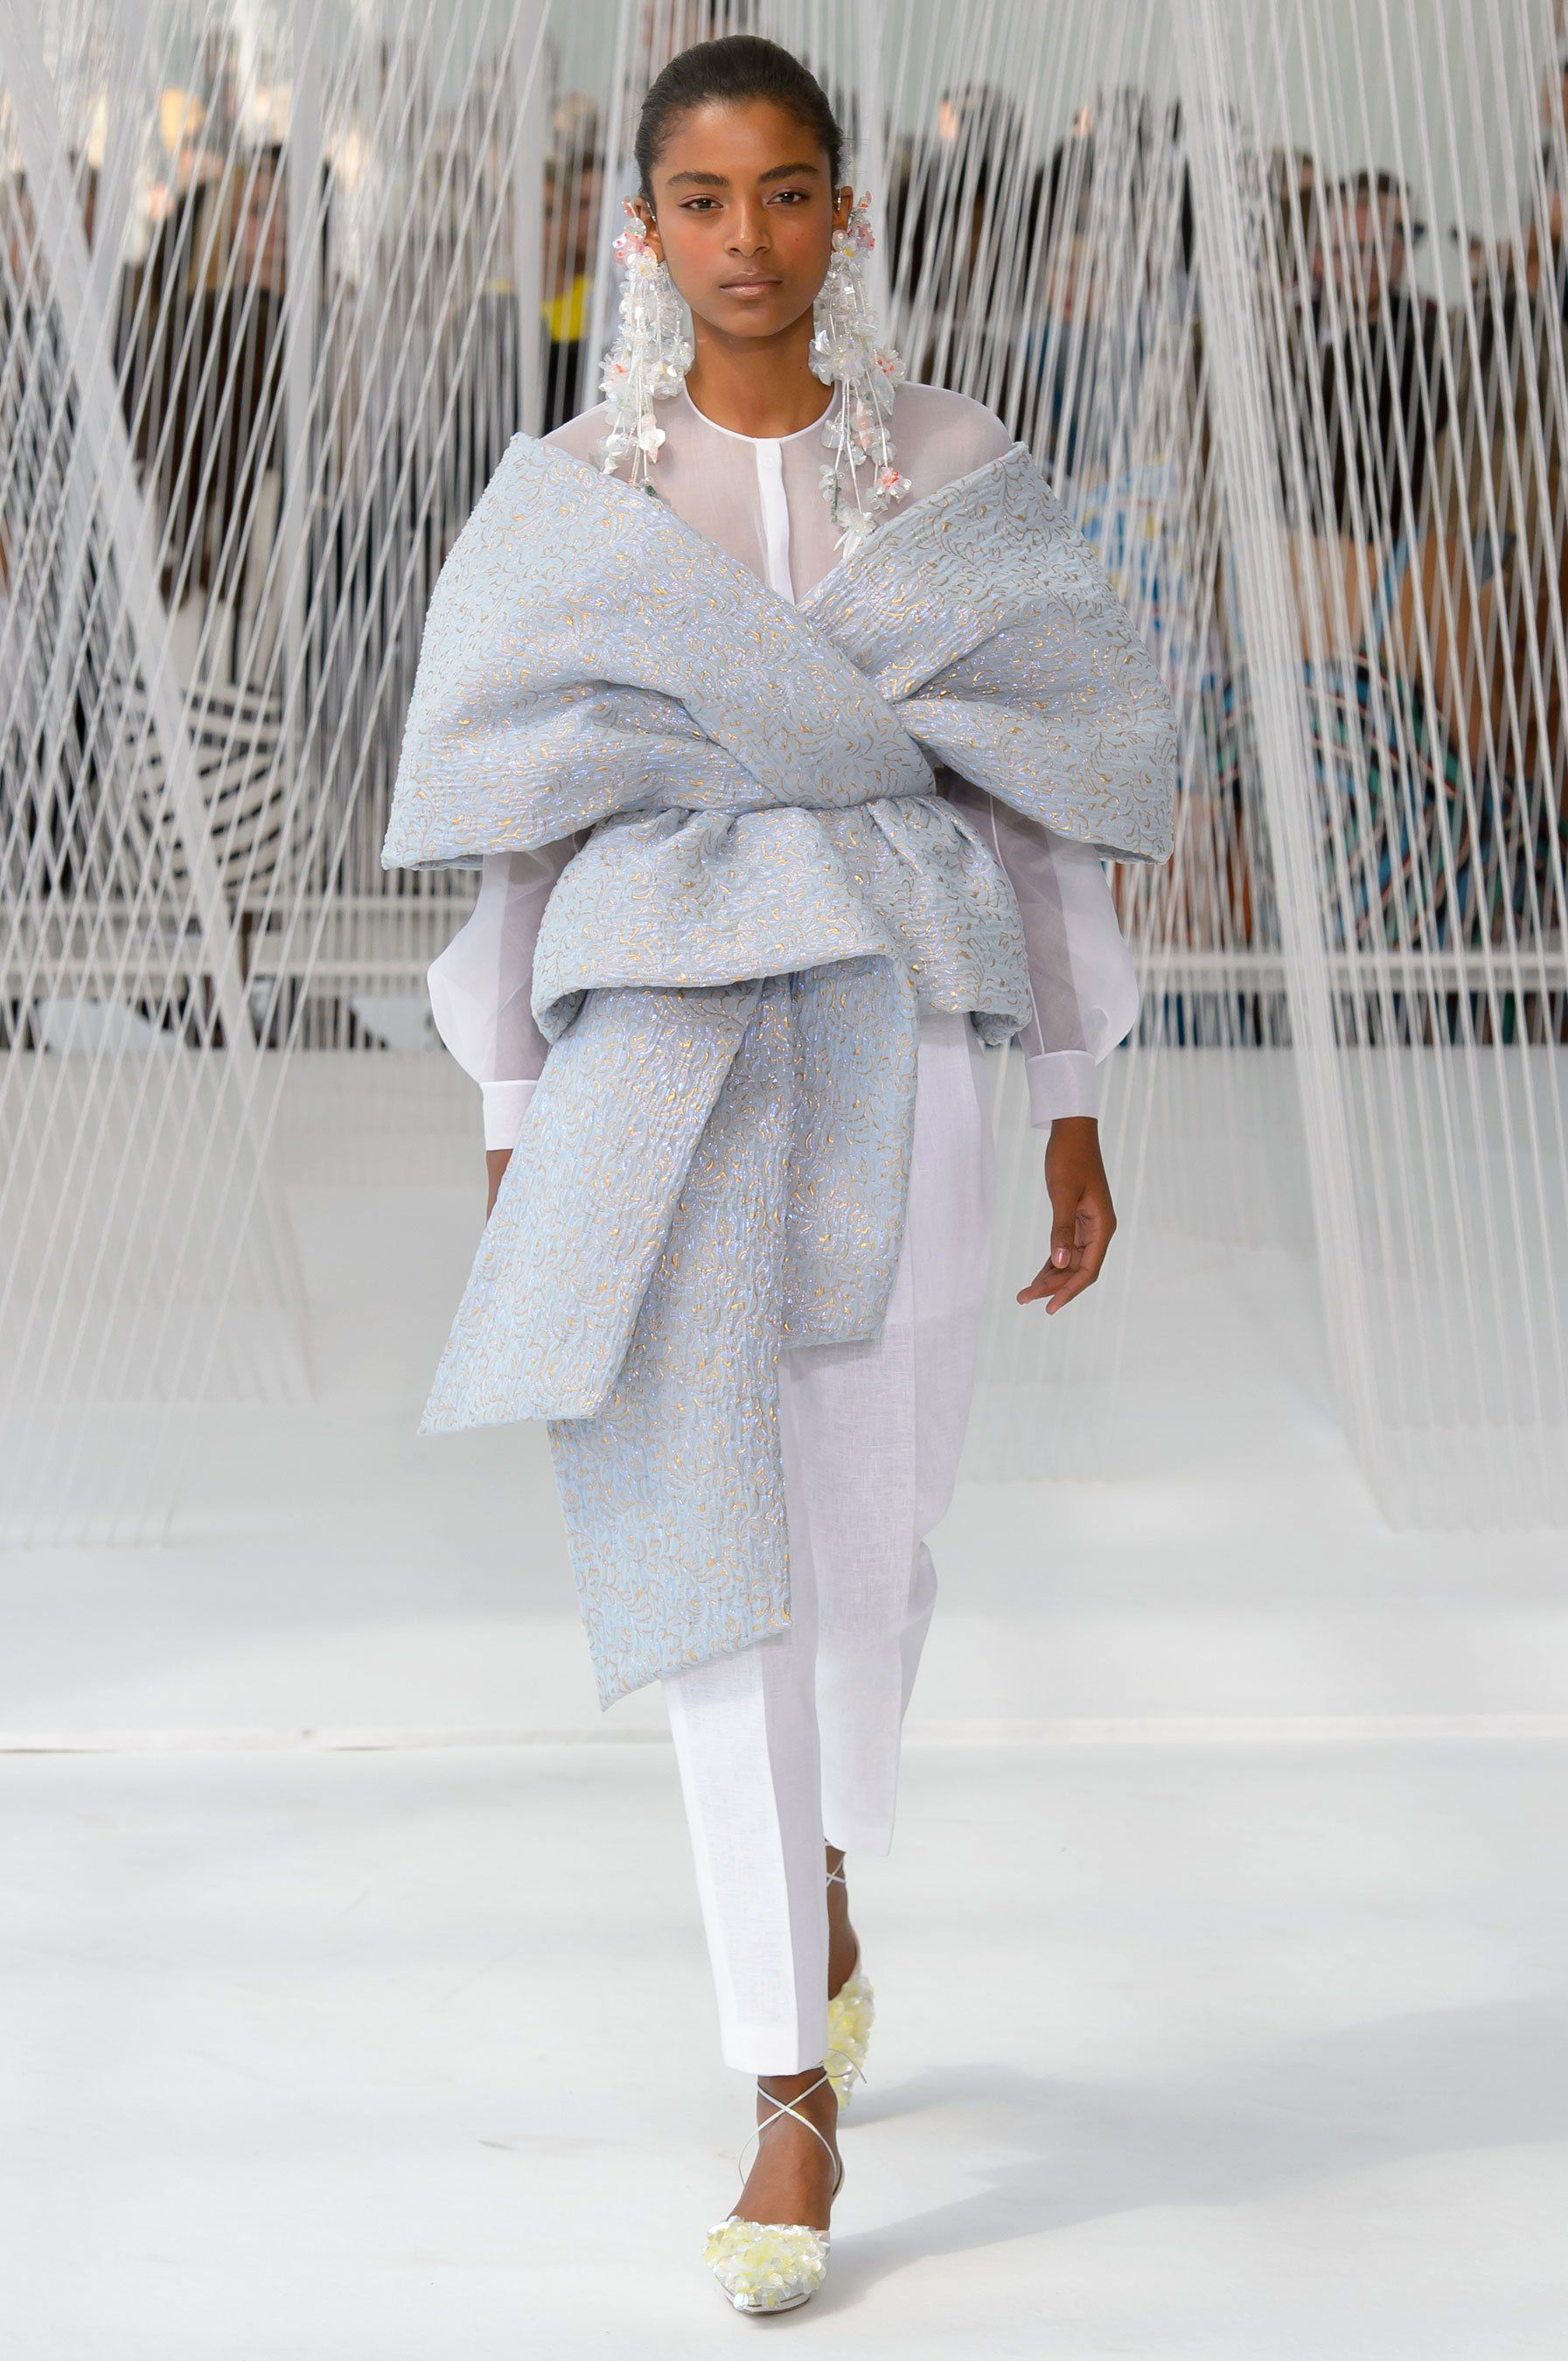 This Is The Fantastical Fashion Week Show We All Need To Pay Attention To Fashion Fashion Week New York Fashion Week